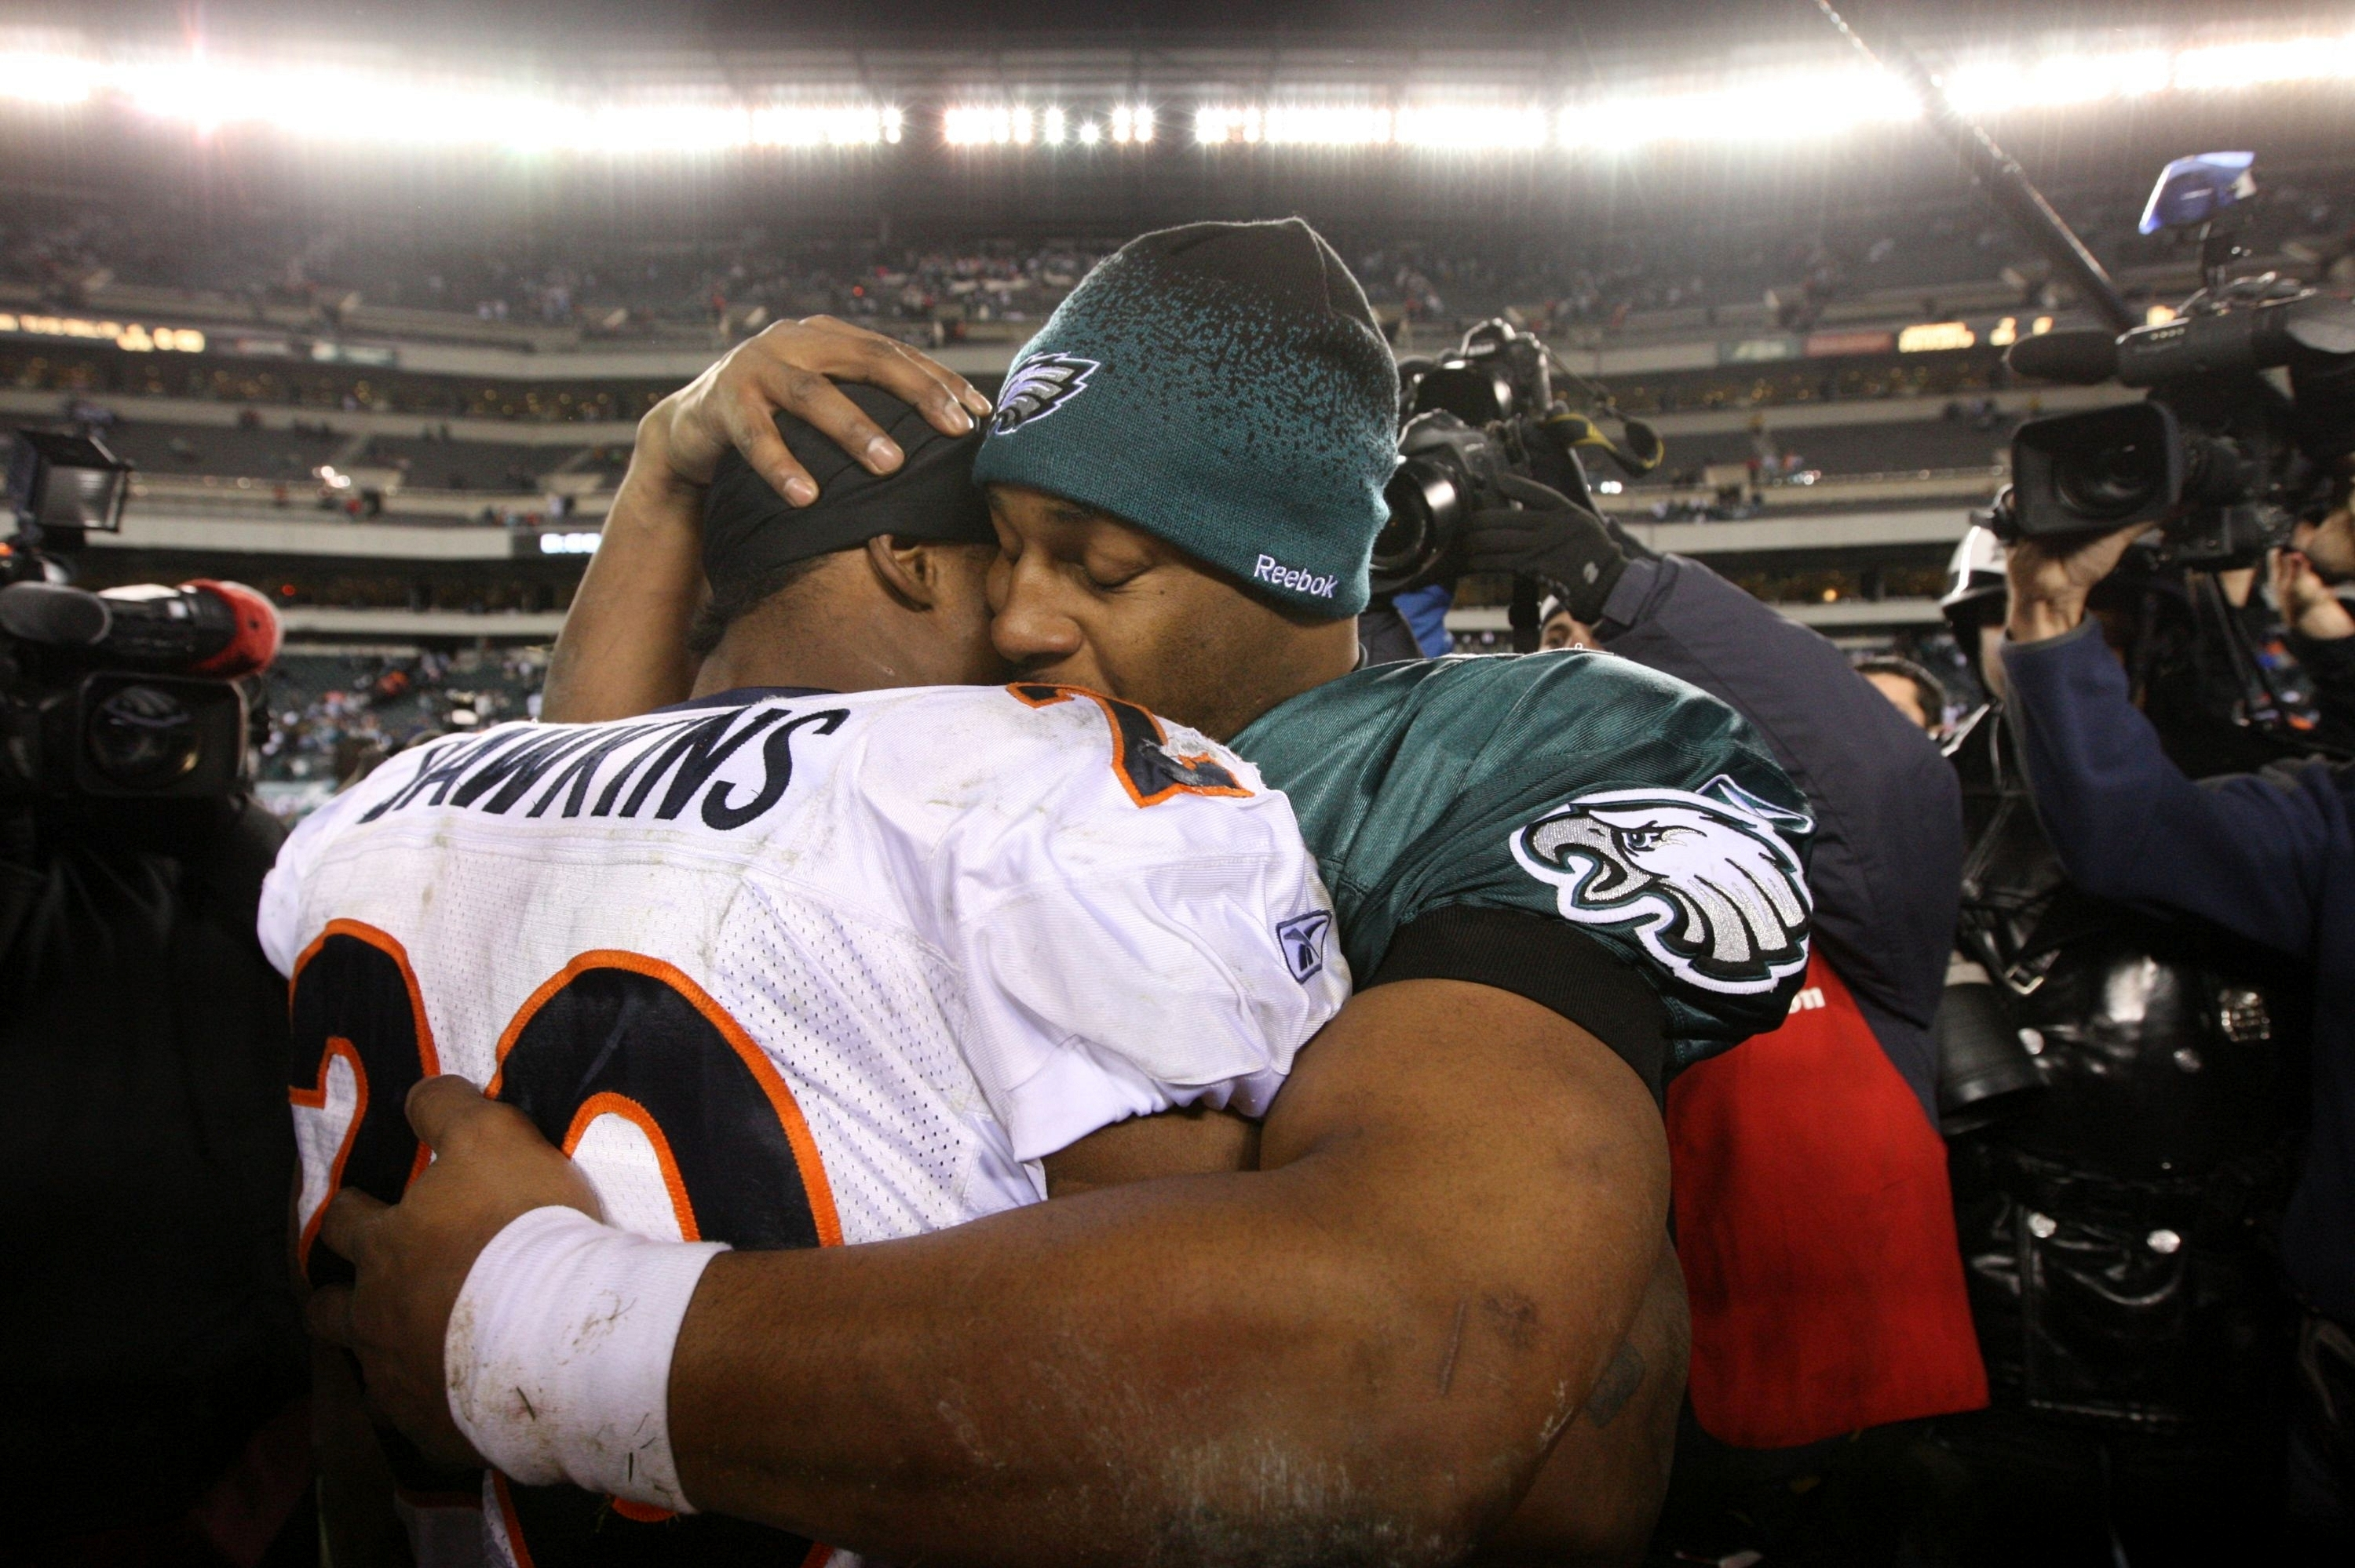 PHILADELPHIA - DECEMBER 27 : Donovan McNabb #5 of the Philadelphia Eagles hugs Brian Dawkins #20 of the Denver Broncos after the game at Lincoln Financial Field on December 27, 2009 in Philadelphia, Pennsylvania. The Broncos were defeated by the Eagles wi